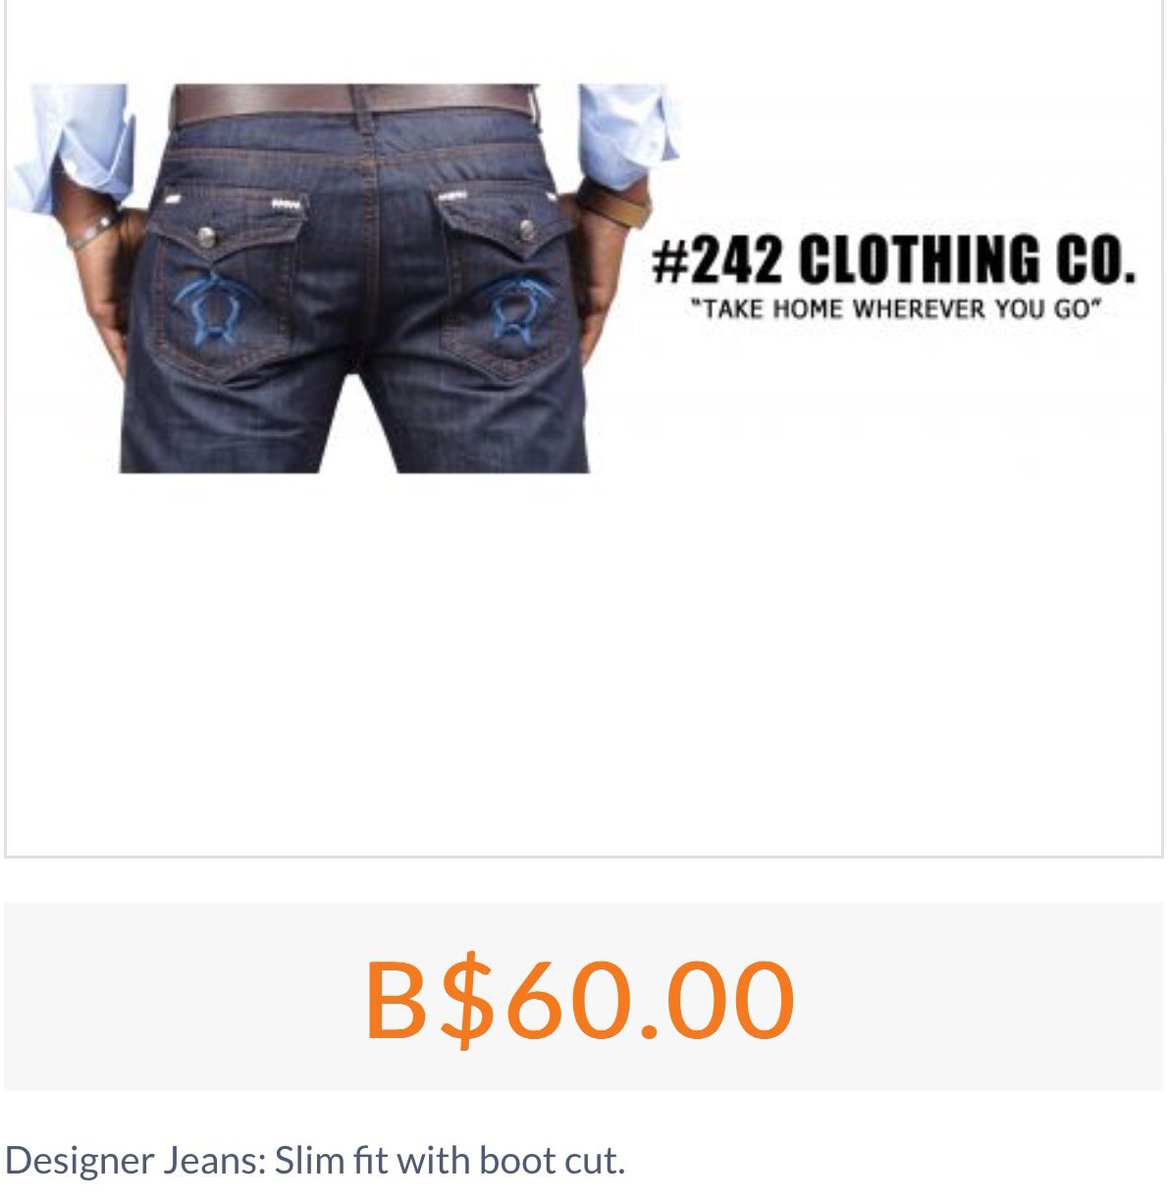 Your guy would look so good in these! #inthosejeans #242clothing #turtle #mensfashion  http://www. shop-Bahamas.com  &nbsp;  <br>http://pic.twitter.com/yxKqtAWTG8